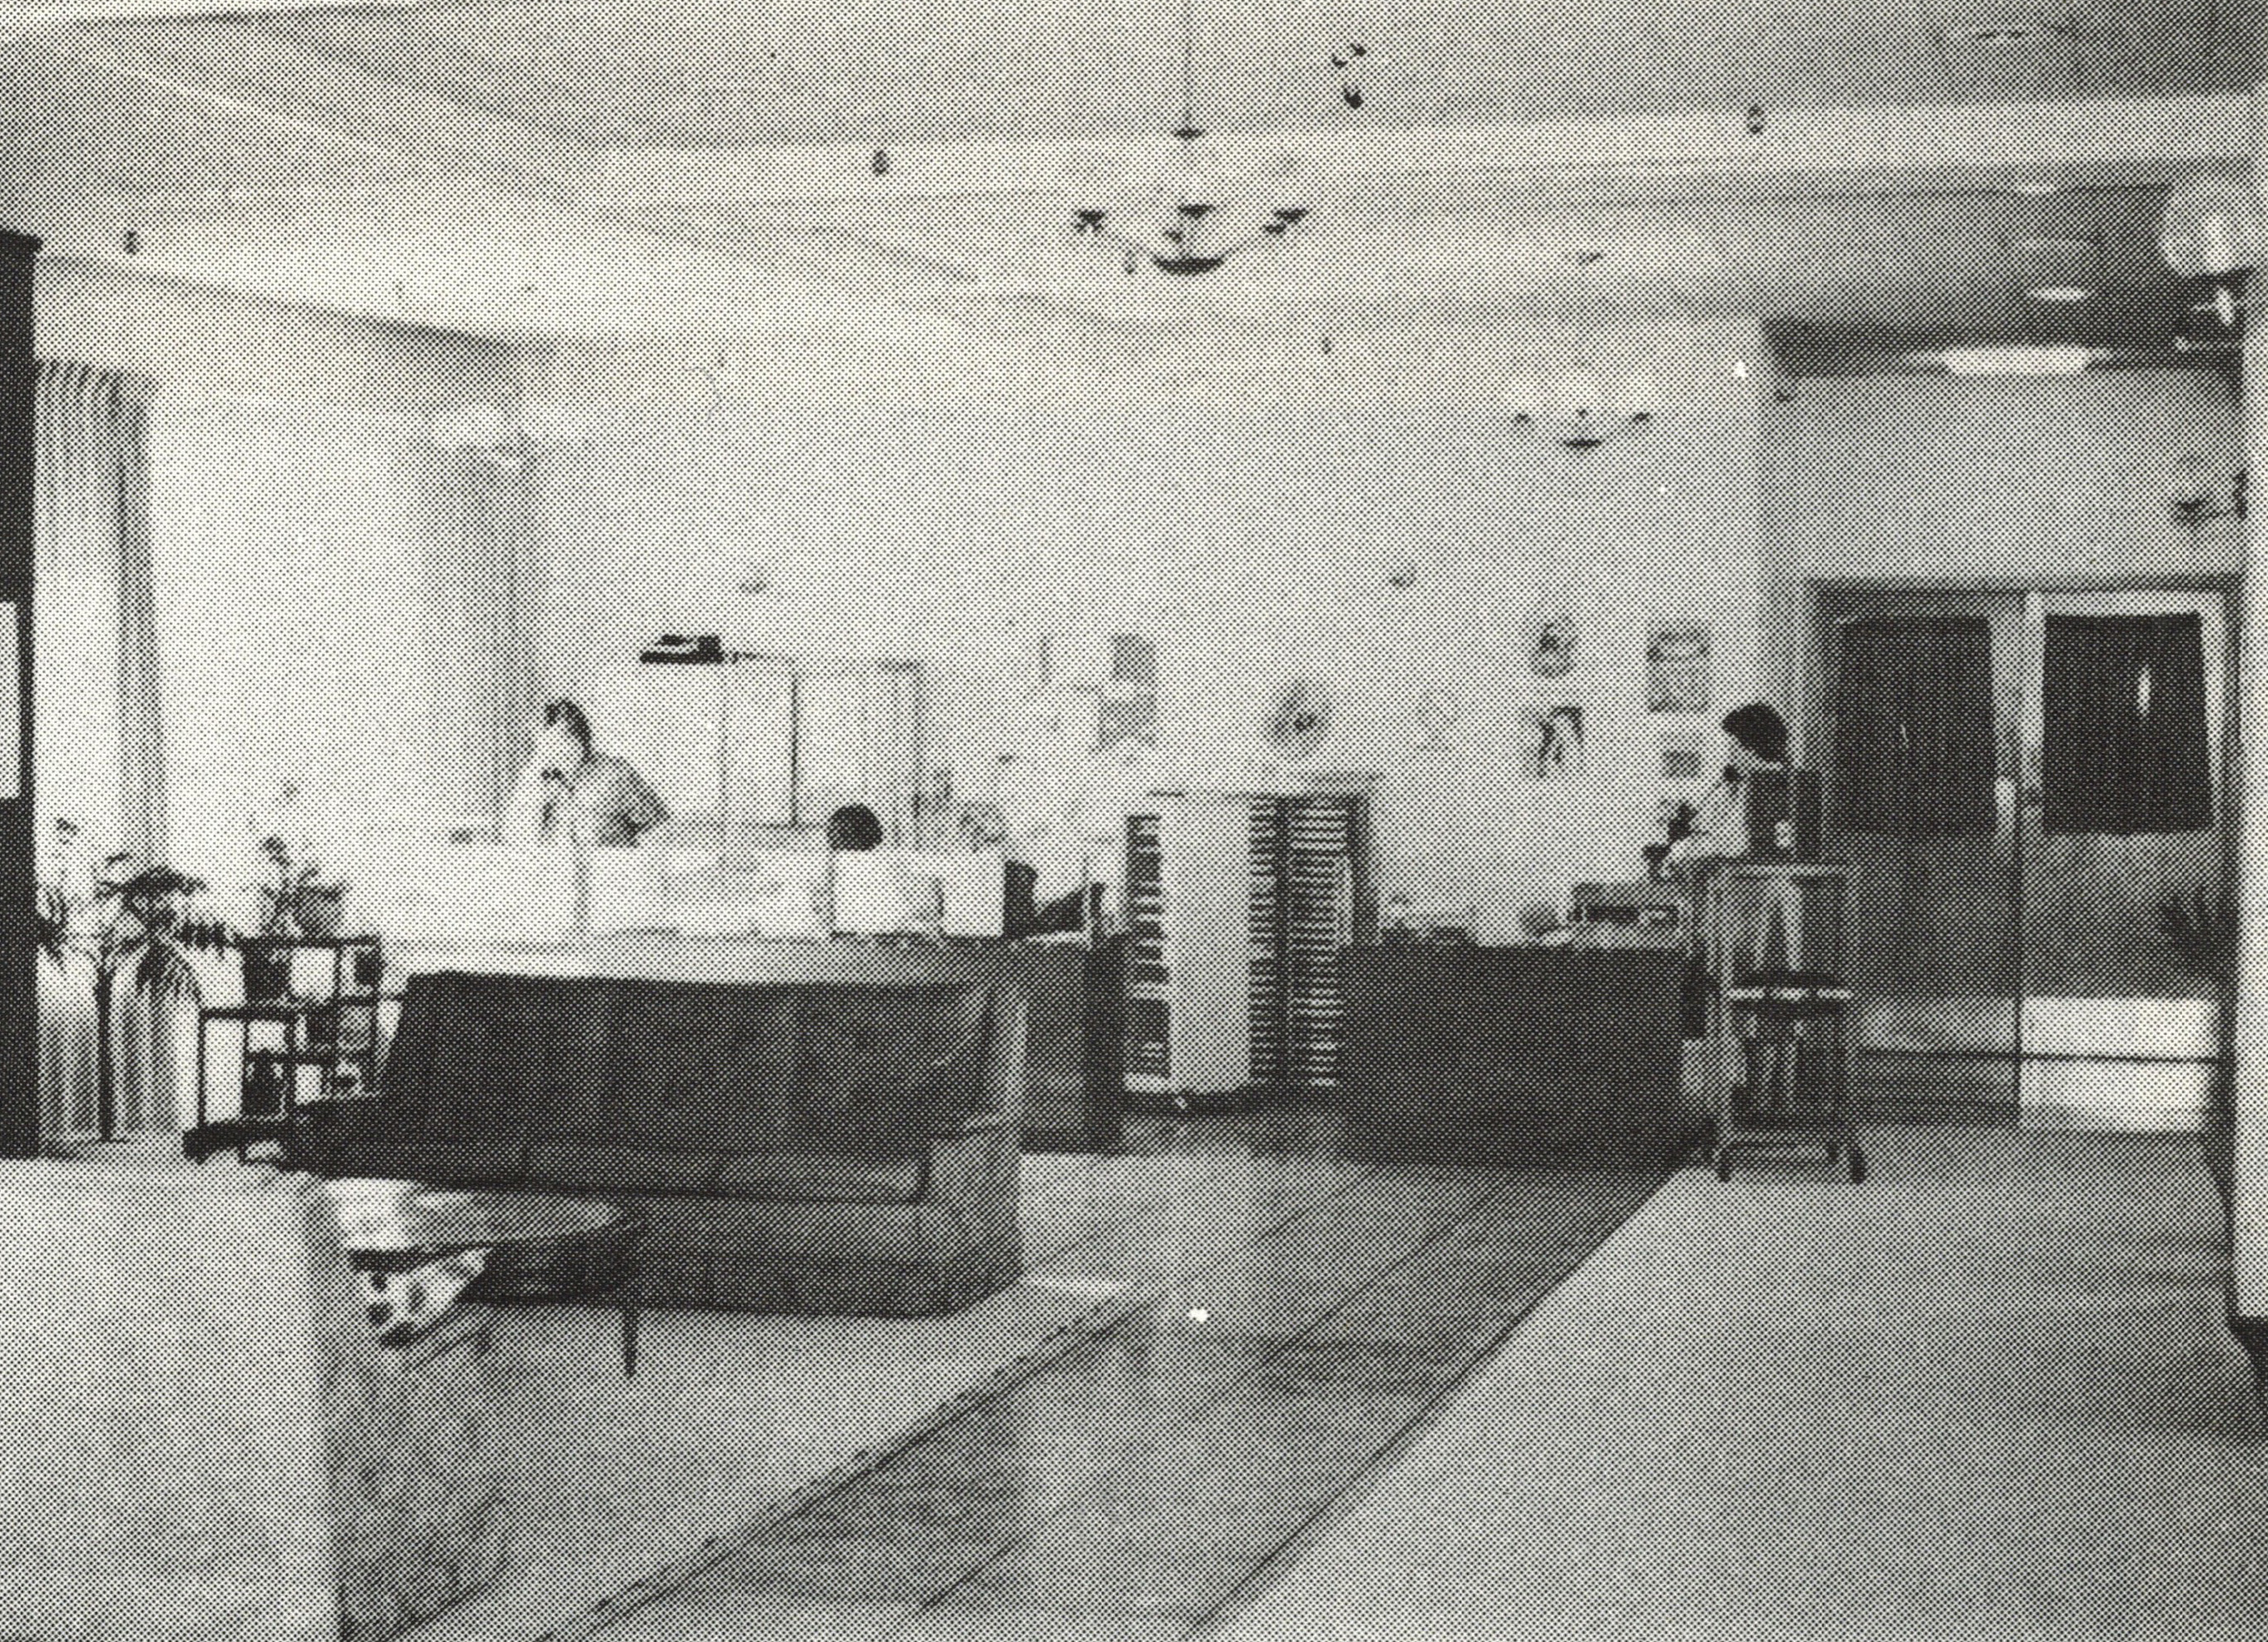 black and white interior shot of living room area, circa 1960s or 1970s